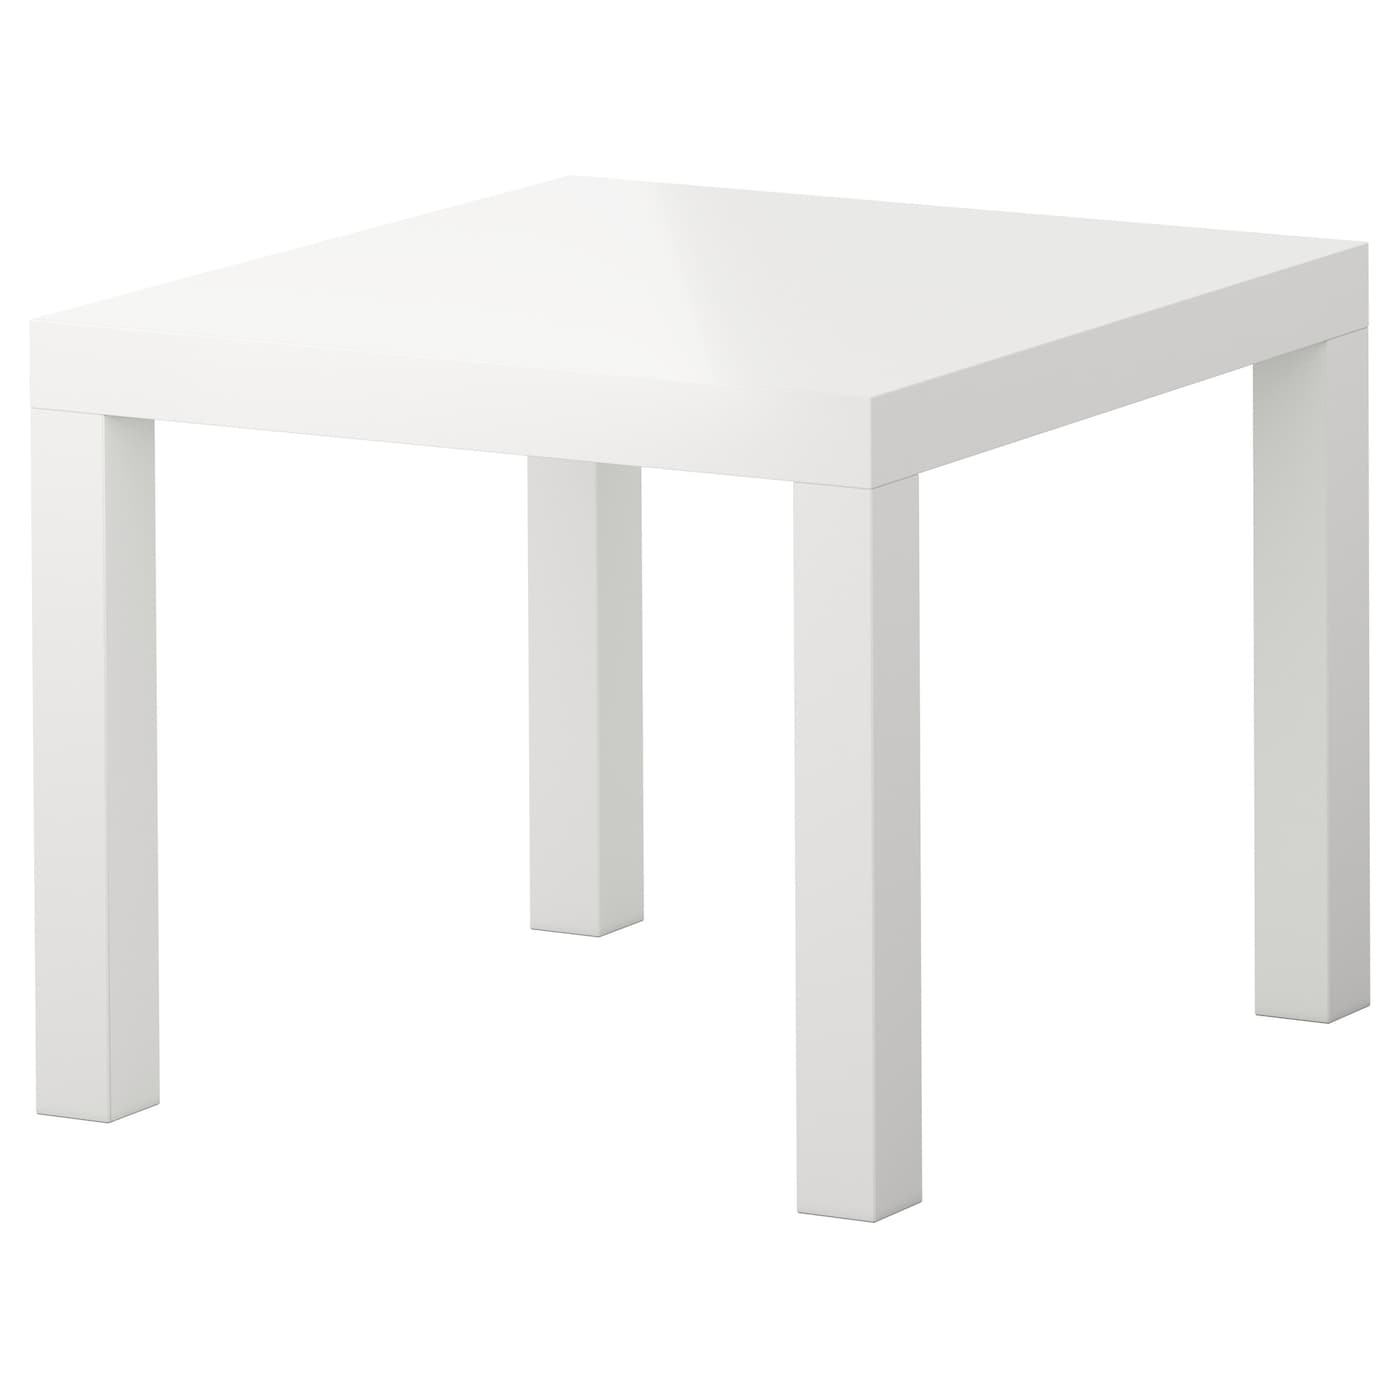 Superieur IKEA LACK Side Table The High Gloss Surfaces Reflect Light And Give A  Vibrant Look